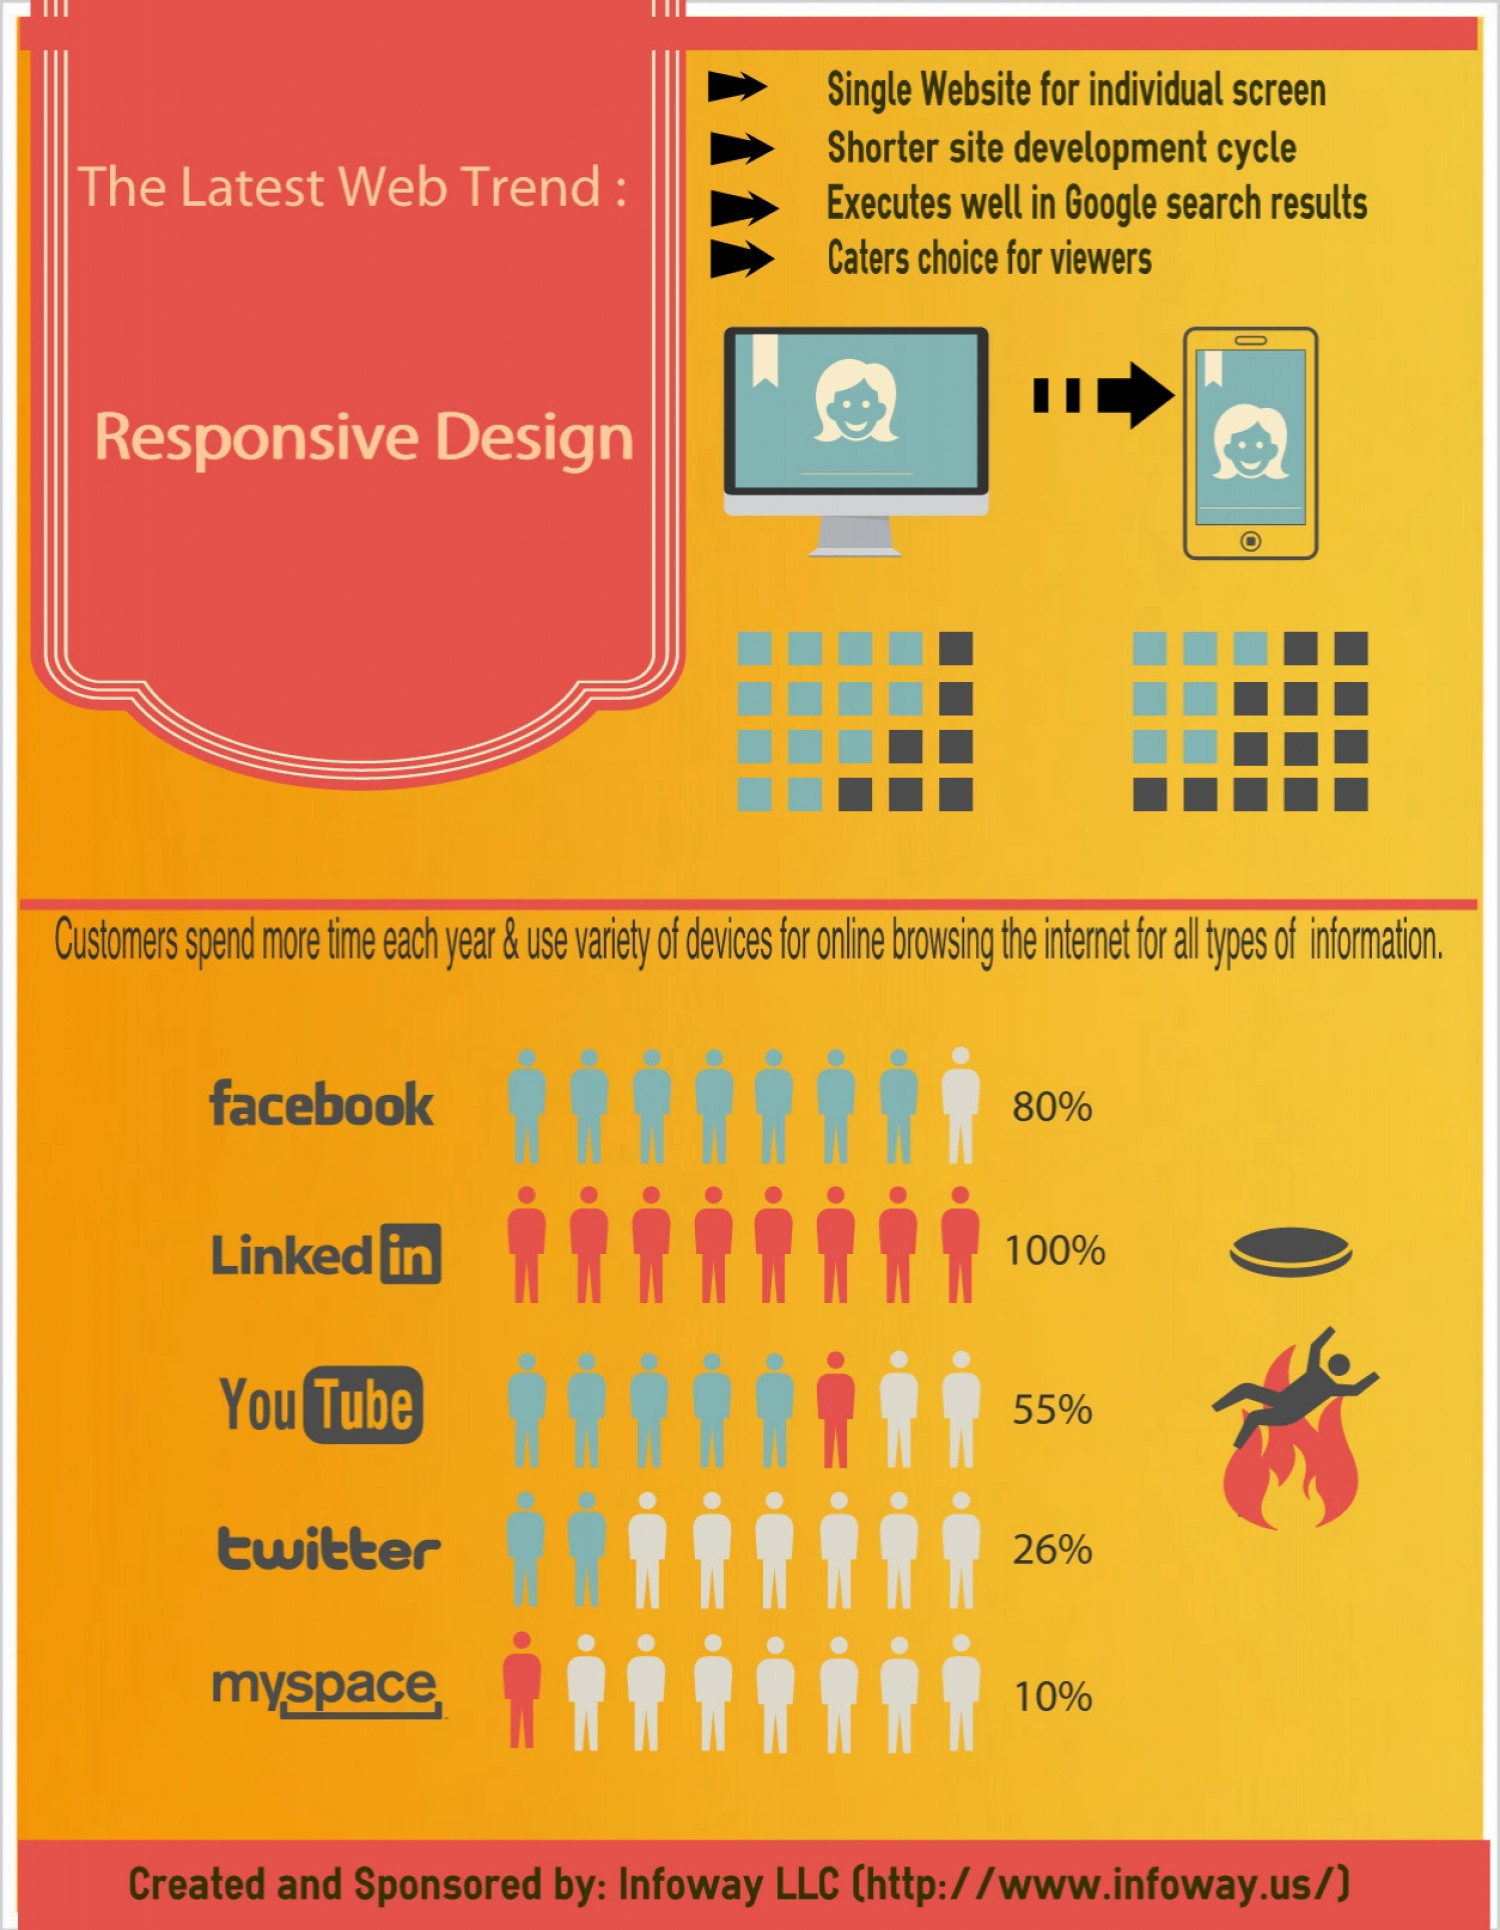 The Latest Web Trend - Responsive Design Infographic